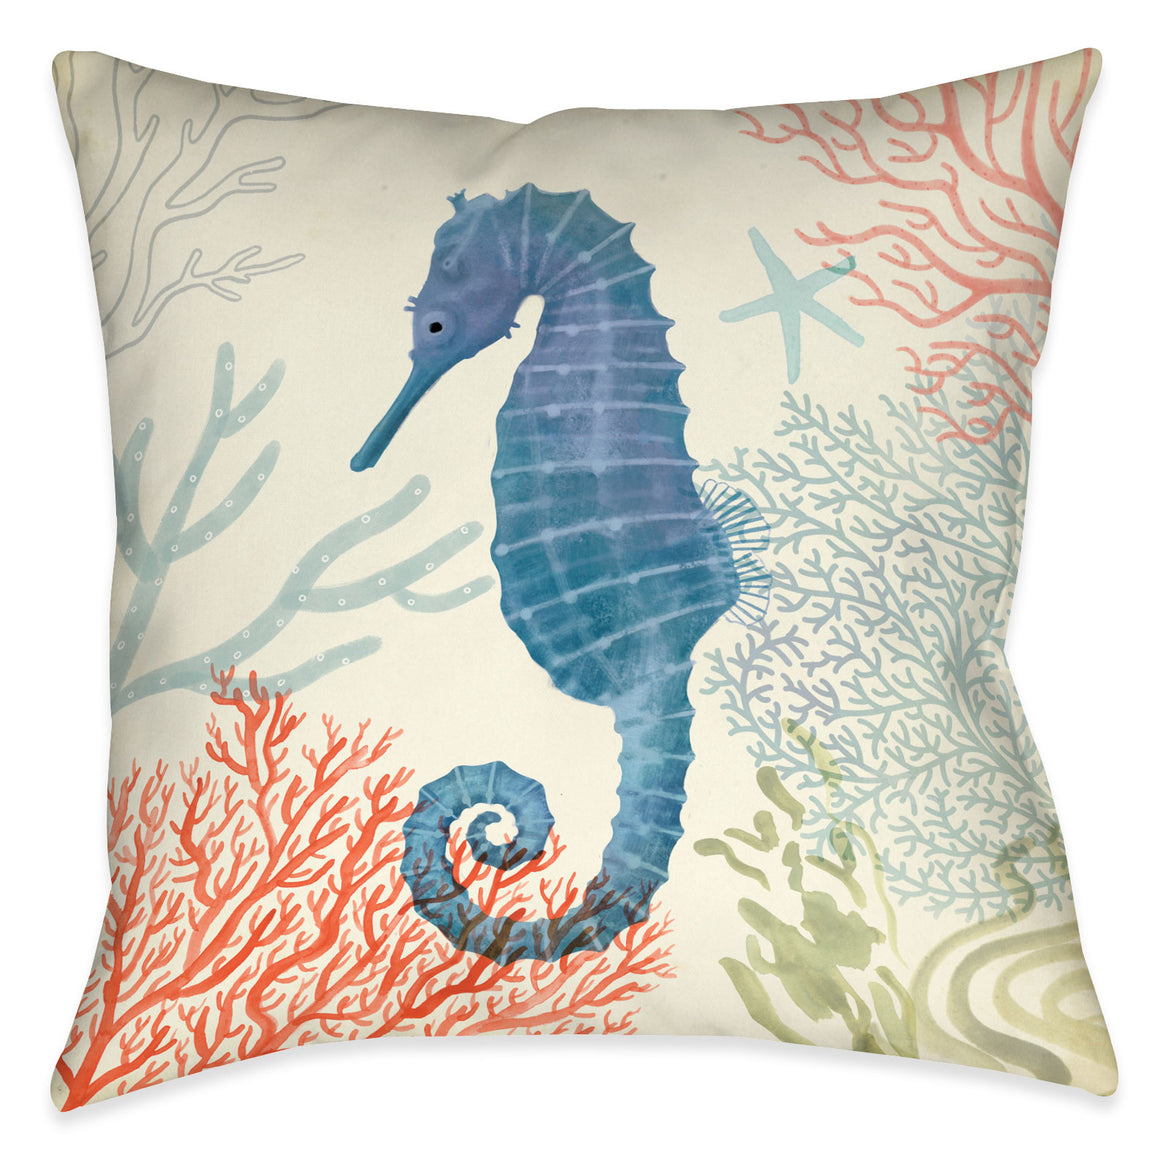 Ocean Whimsy III Outdoor Decorative Pillow